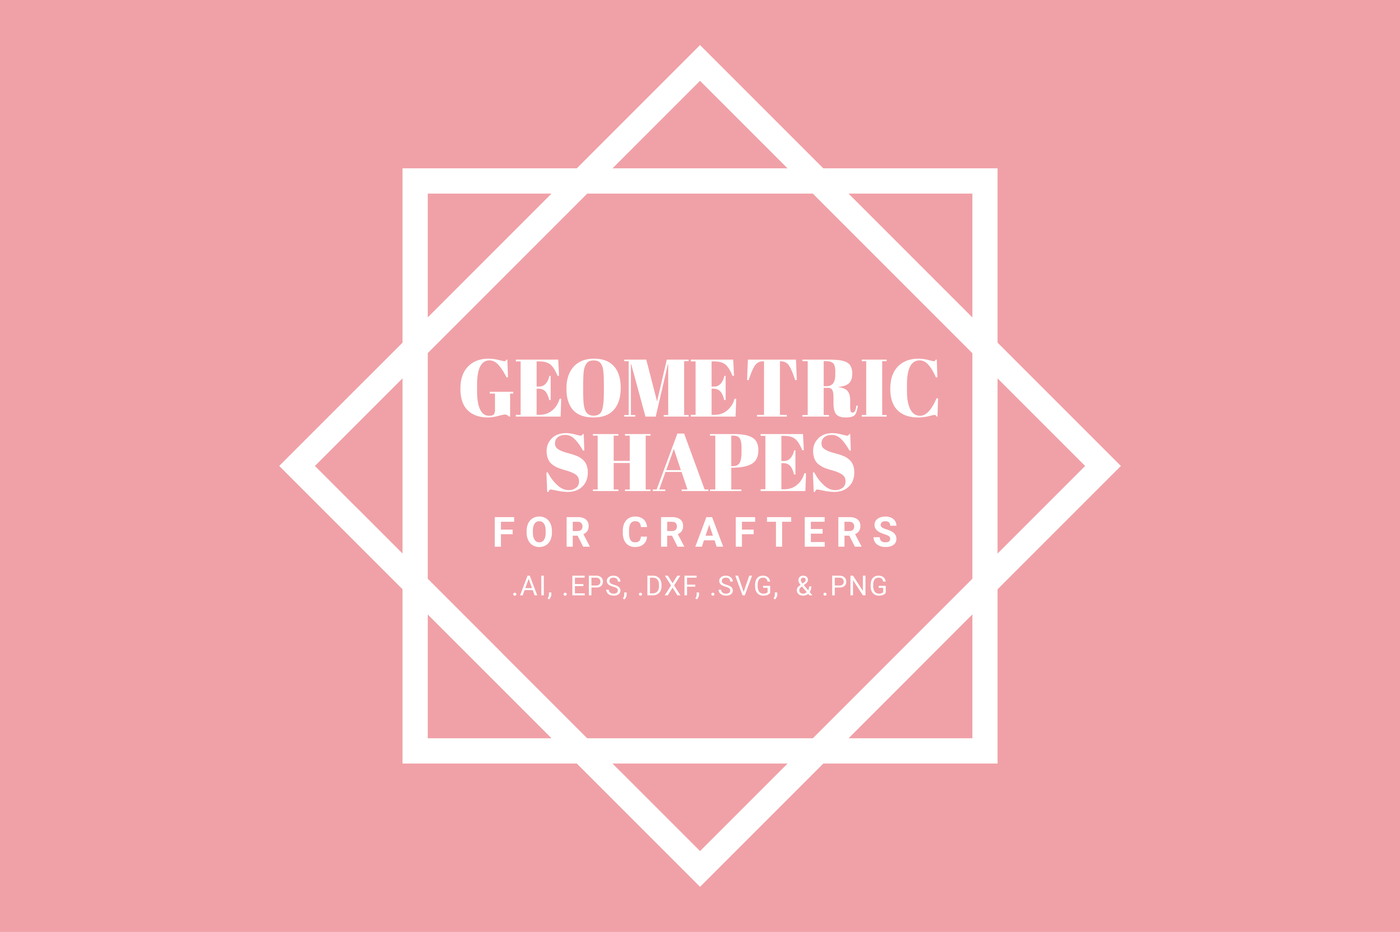 Geometric Shapes For Crafters By Brandi Lea Designs